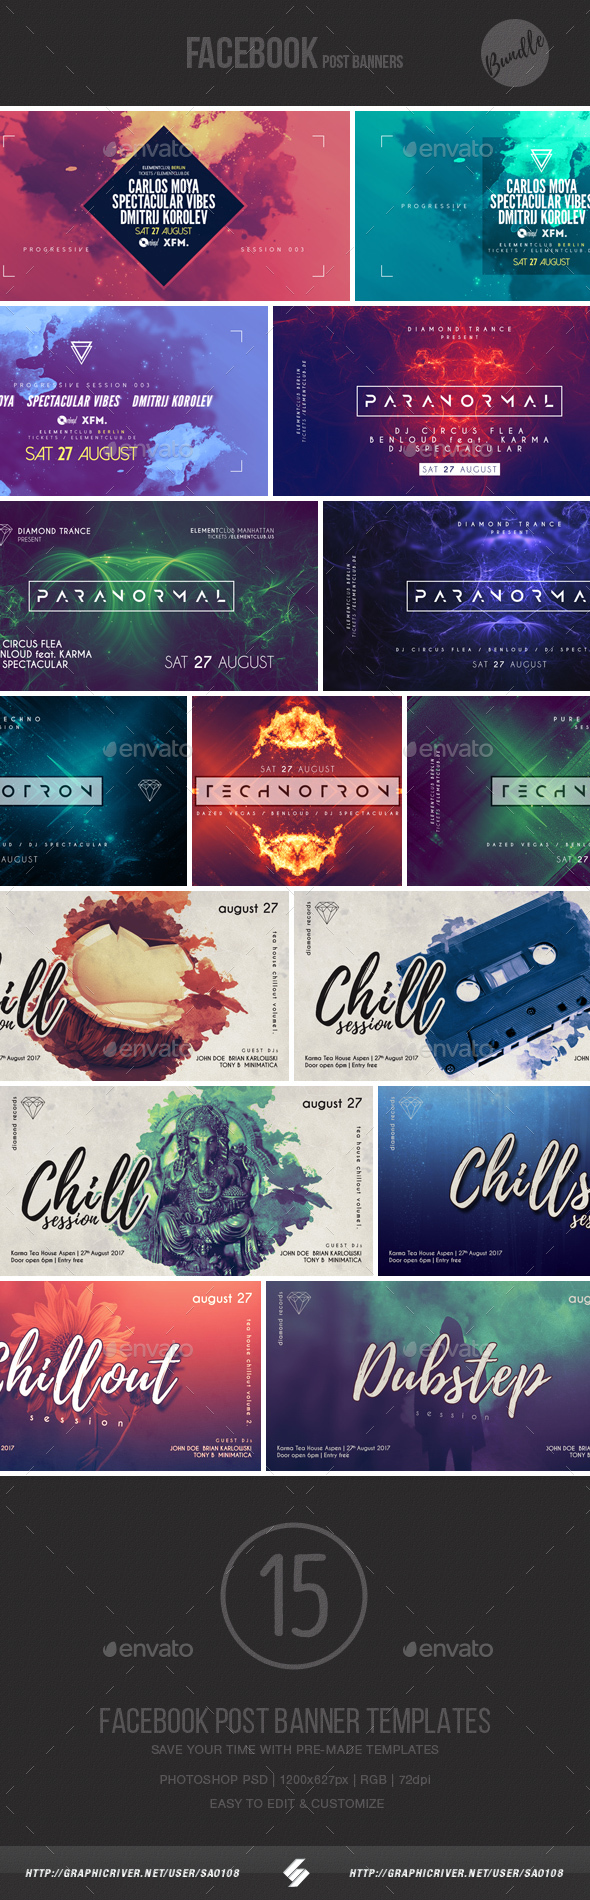 Electronic Music Event Facebook Post Banner Templates Bundle 5 - Social Media Web Elements